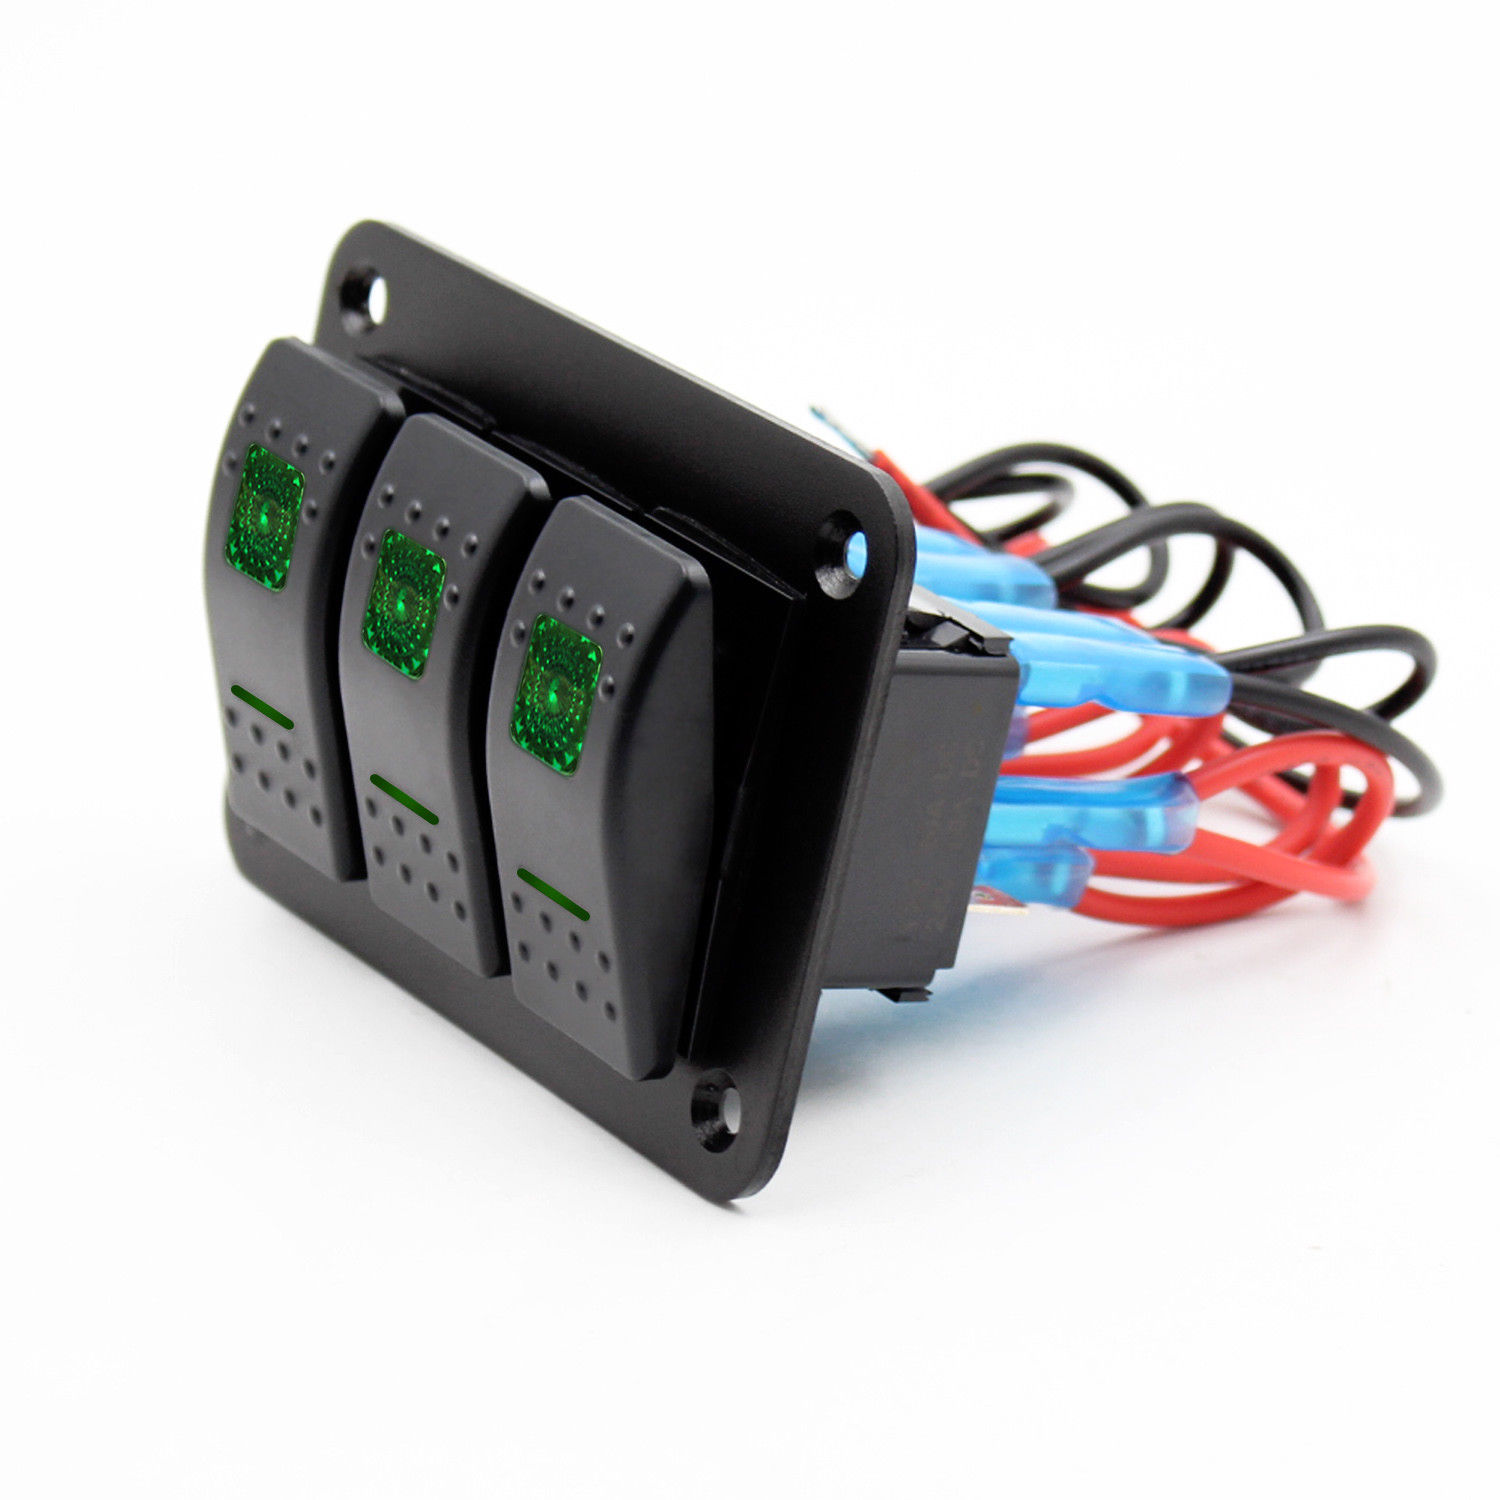 12V-24V 3 Gang Toggle Rocker Switch Panel Green LED Light IP66 waterproof On Off Car Marine Boat switch panel CE certification 12v 24v 8gang on off rock switch panel for boat marine rv yacht ship automotive toggle switches red led